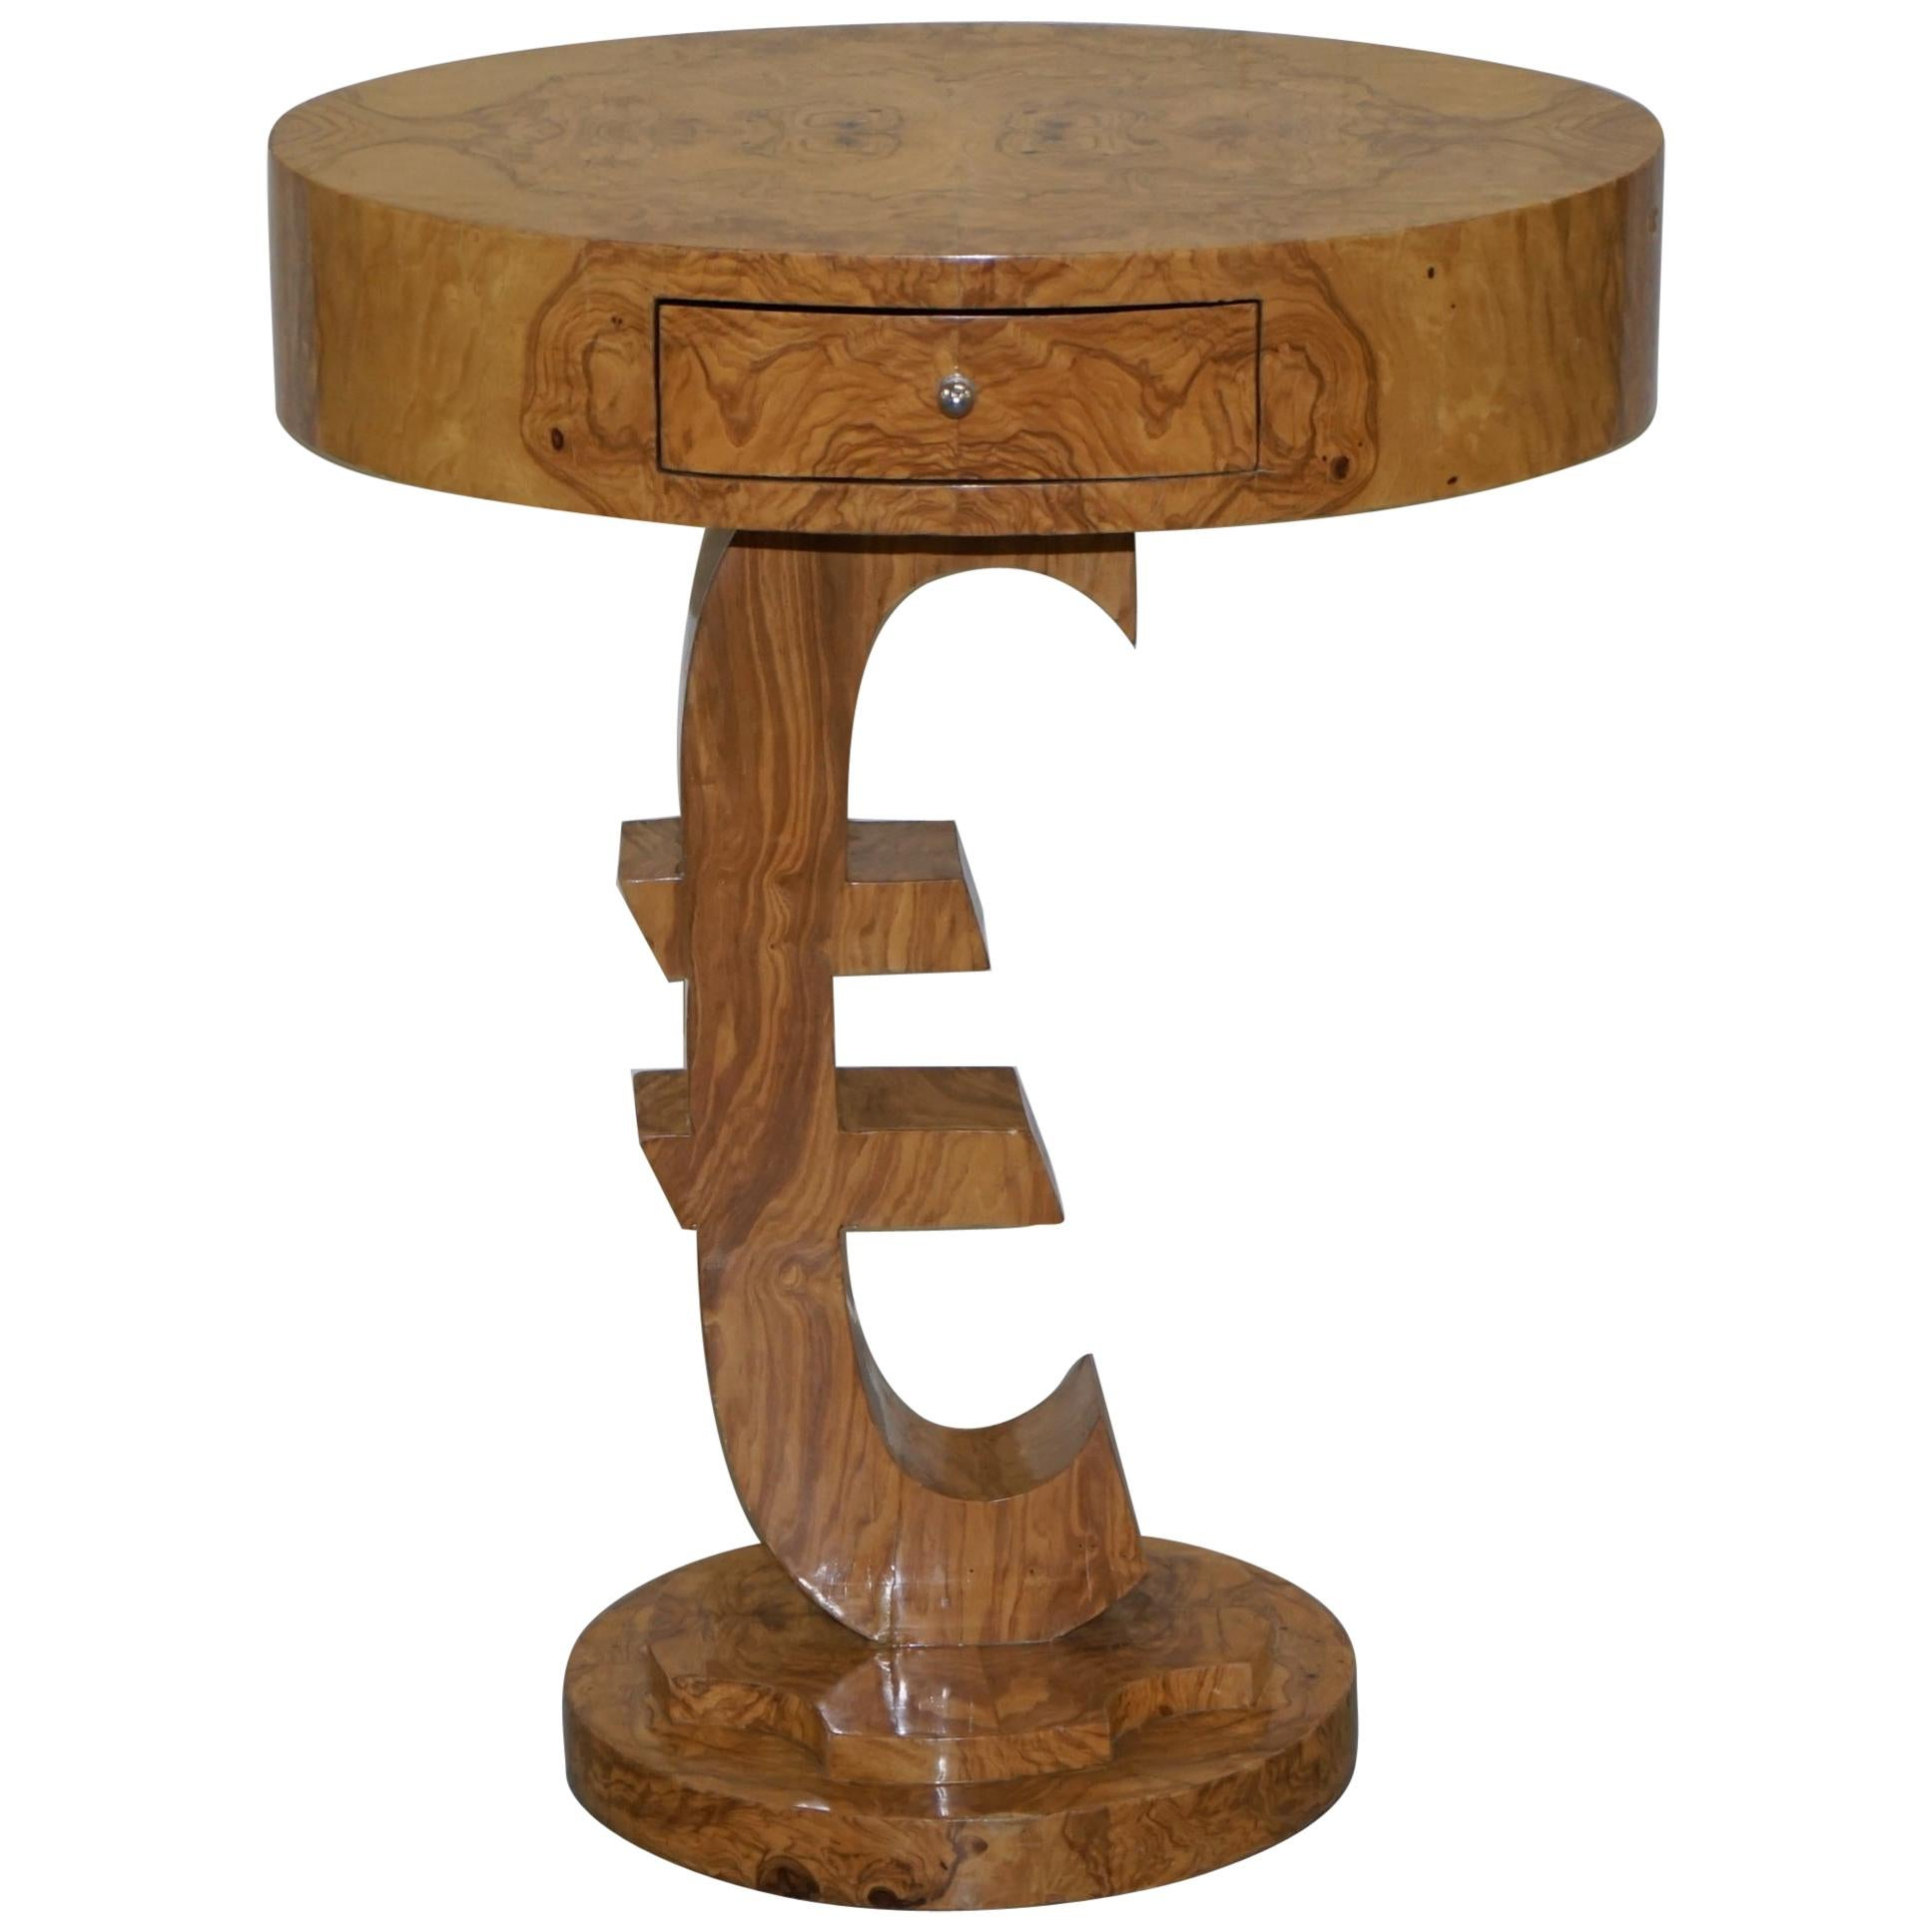 Lovely Art Deco Style Burr Walnut Side End Lamp Table with Euro Sign Base